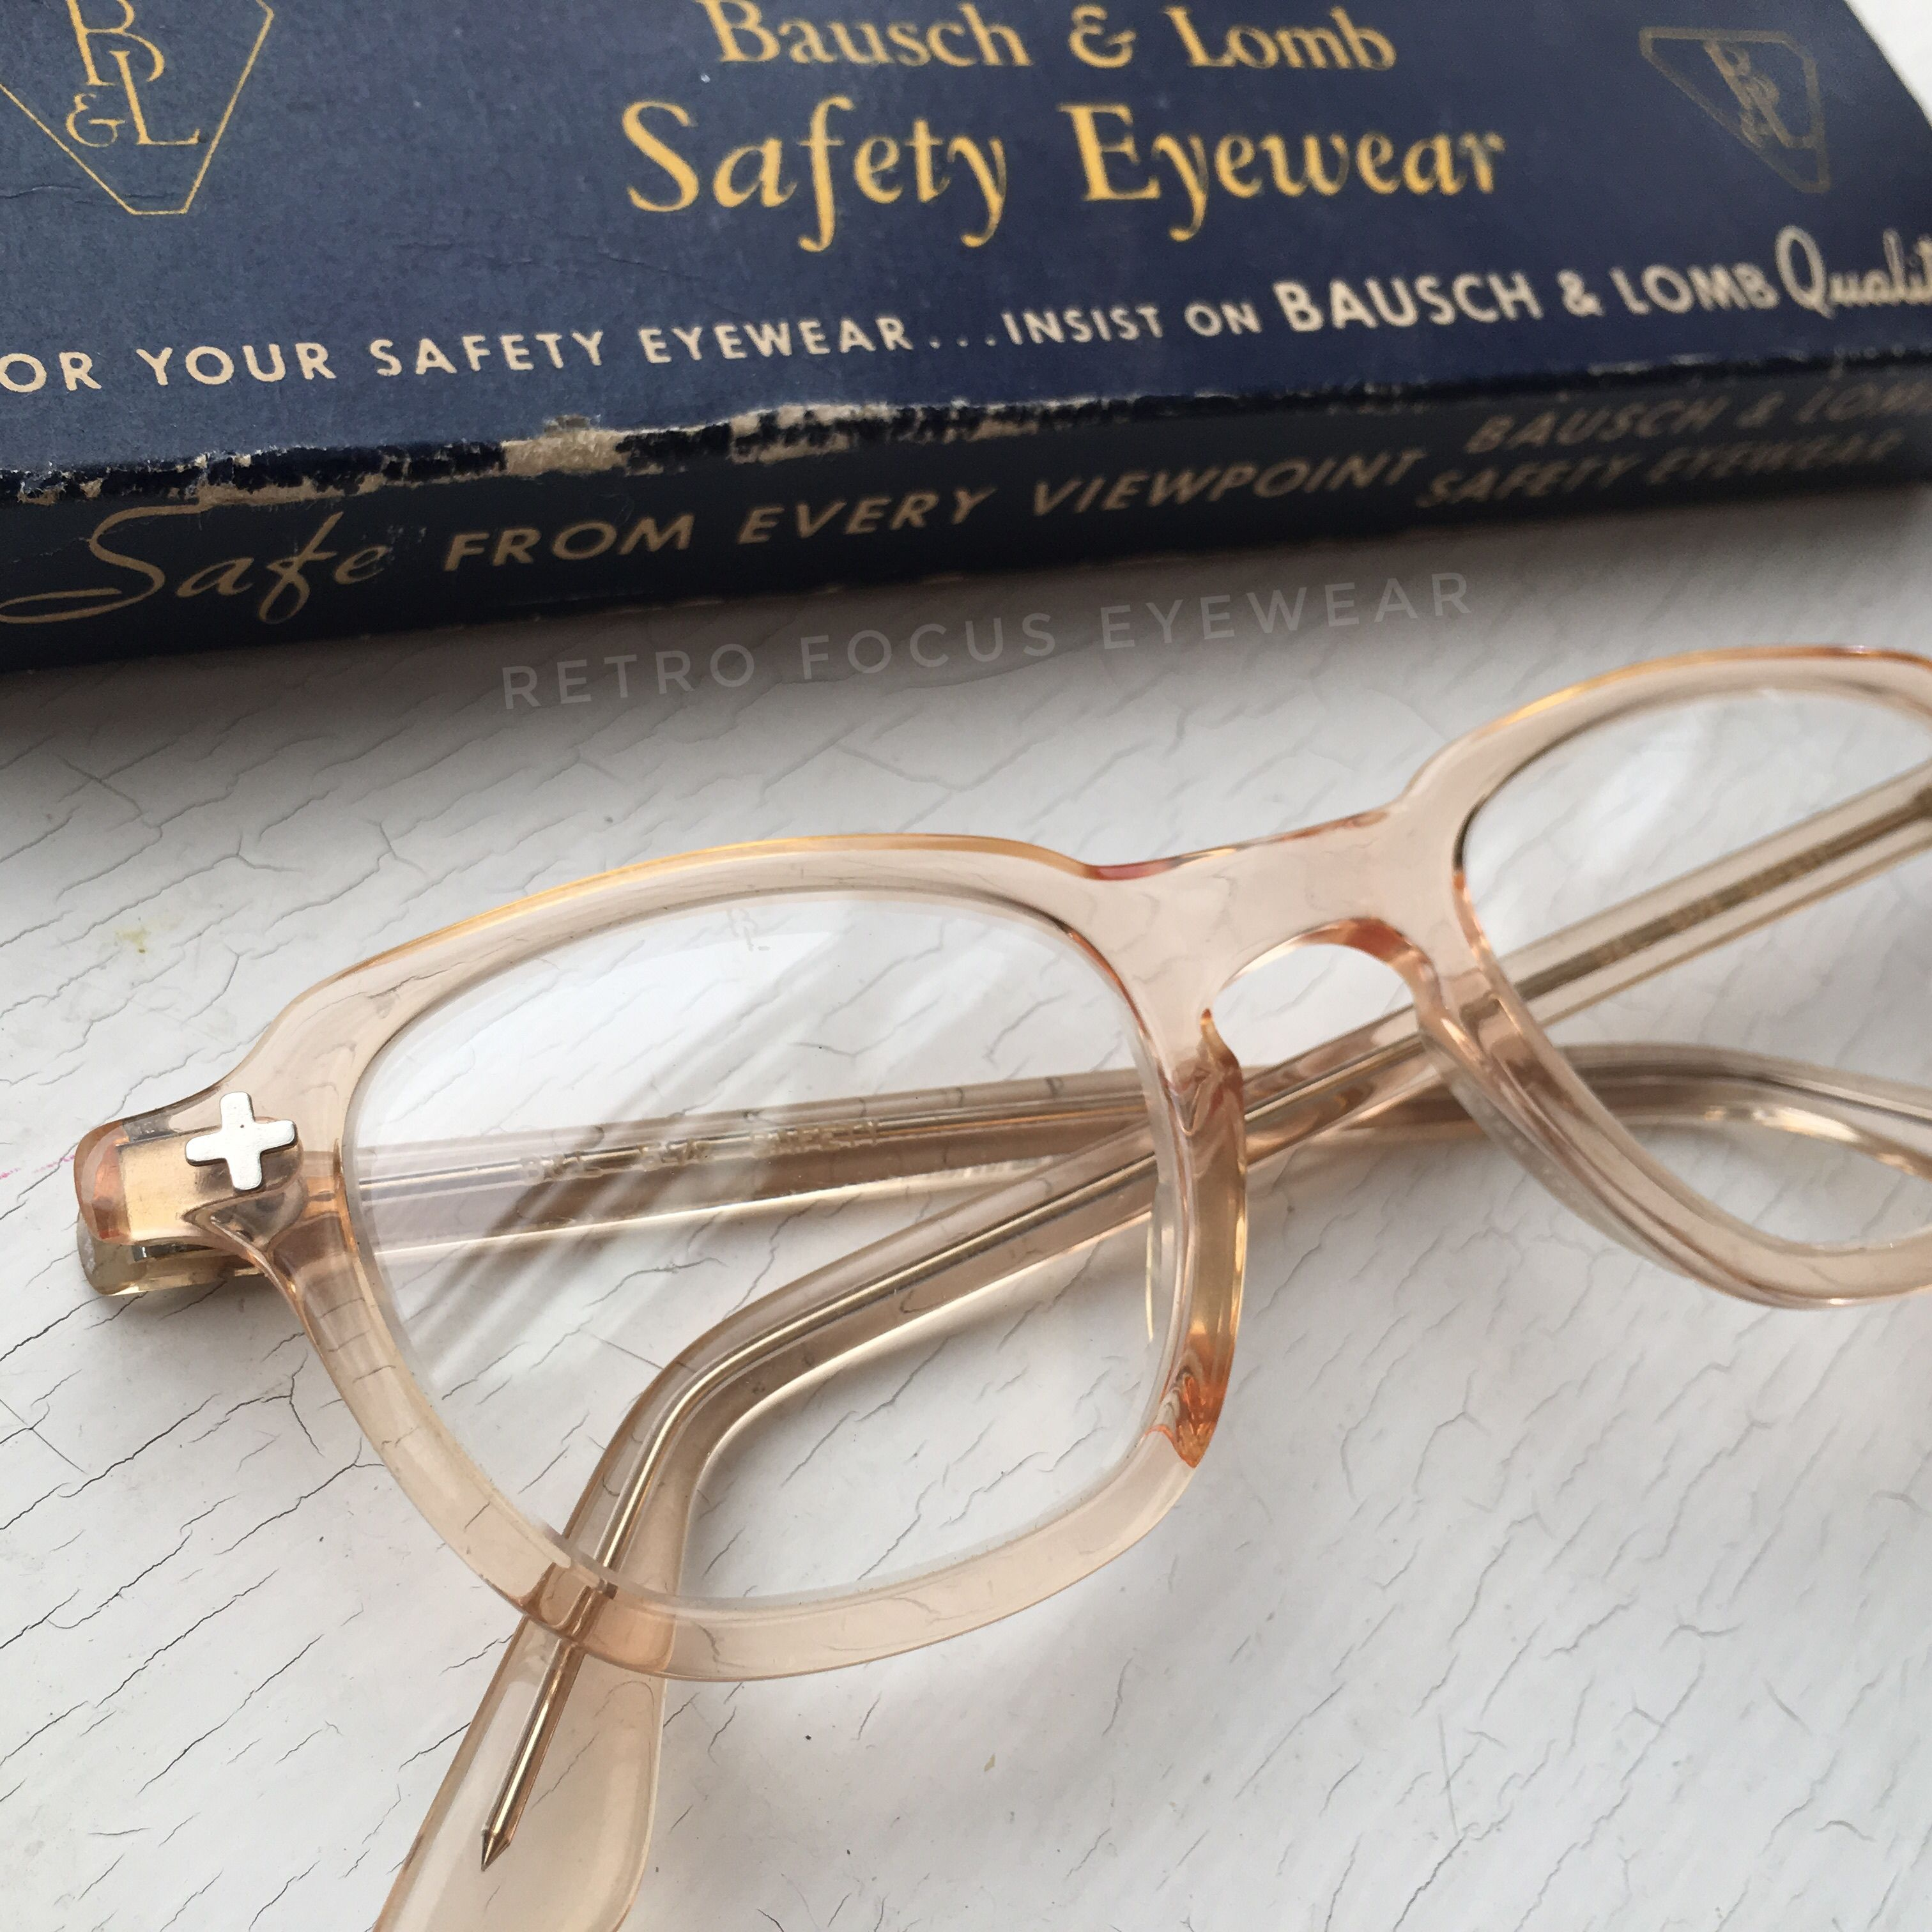 625414228d0 1960 military issued NOS Bausch   Lomb nude peach safety glasses. Rare  color that s perfect for fair skinned complexions and gorgeous on ginger  heads.